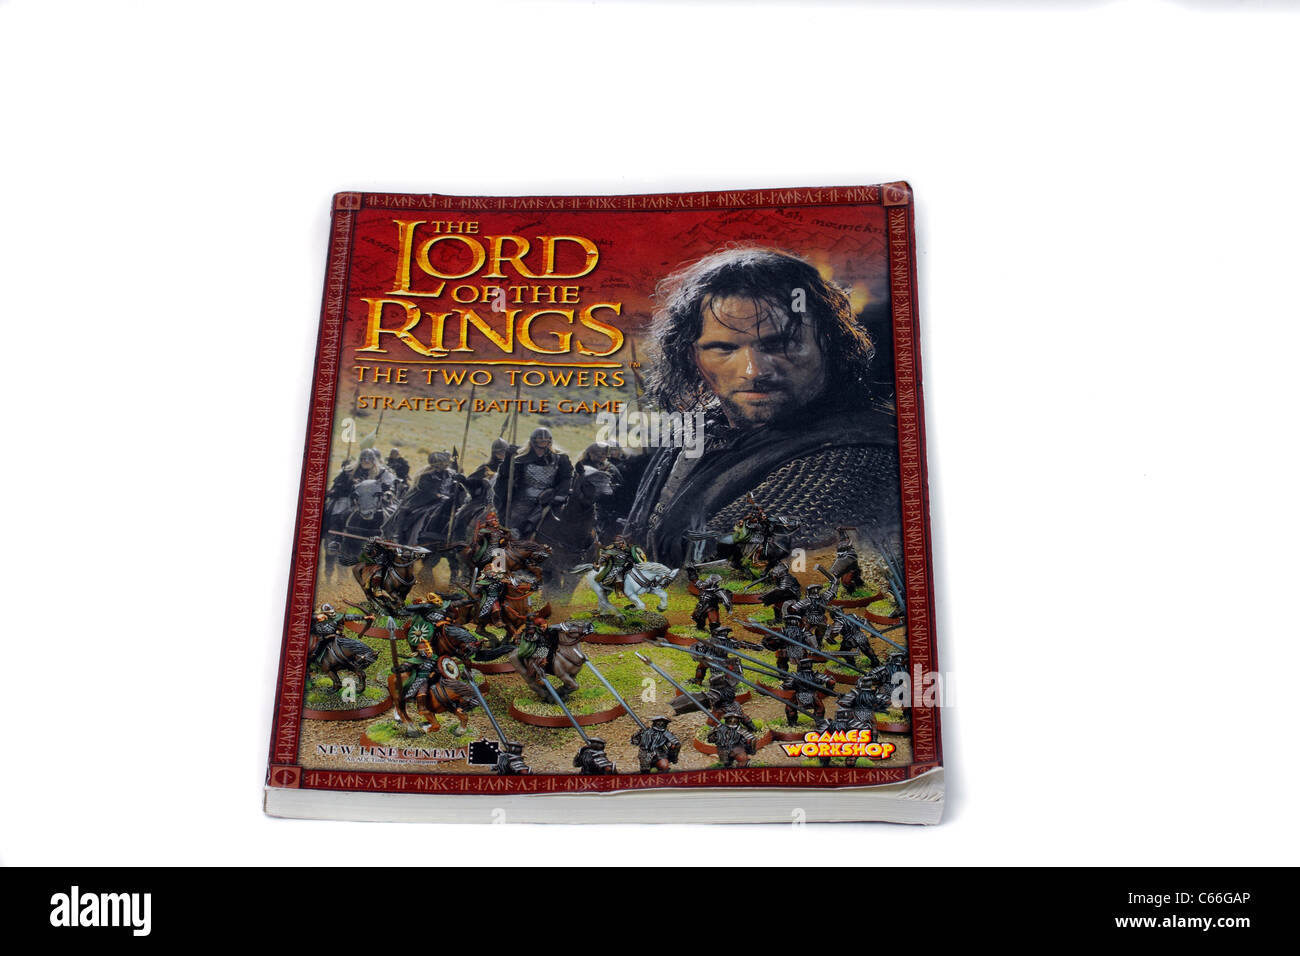 Lord of the Rings Games Workshop - Warhammer Lord of the